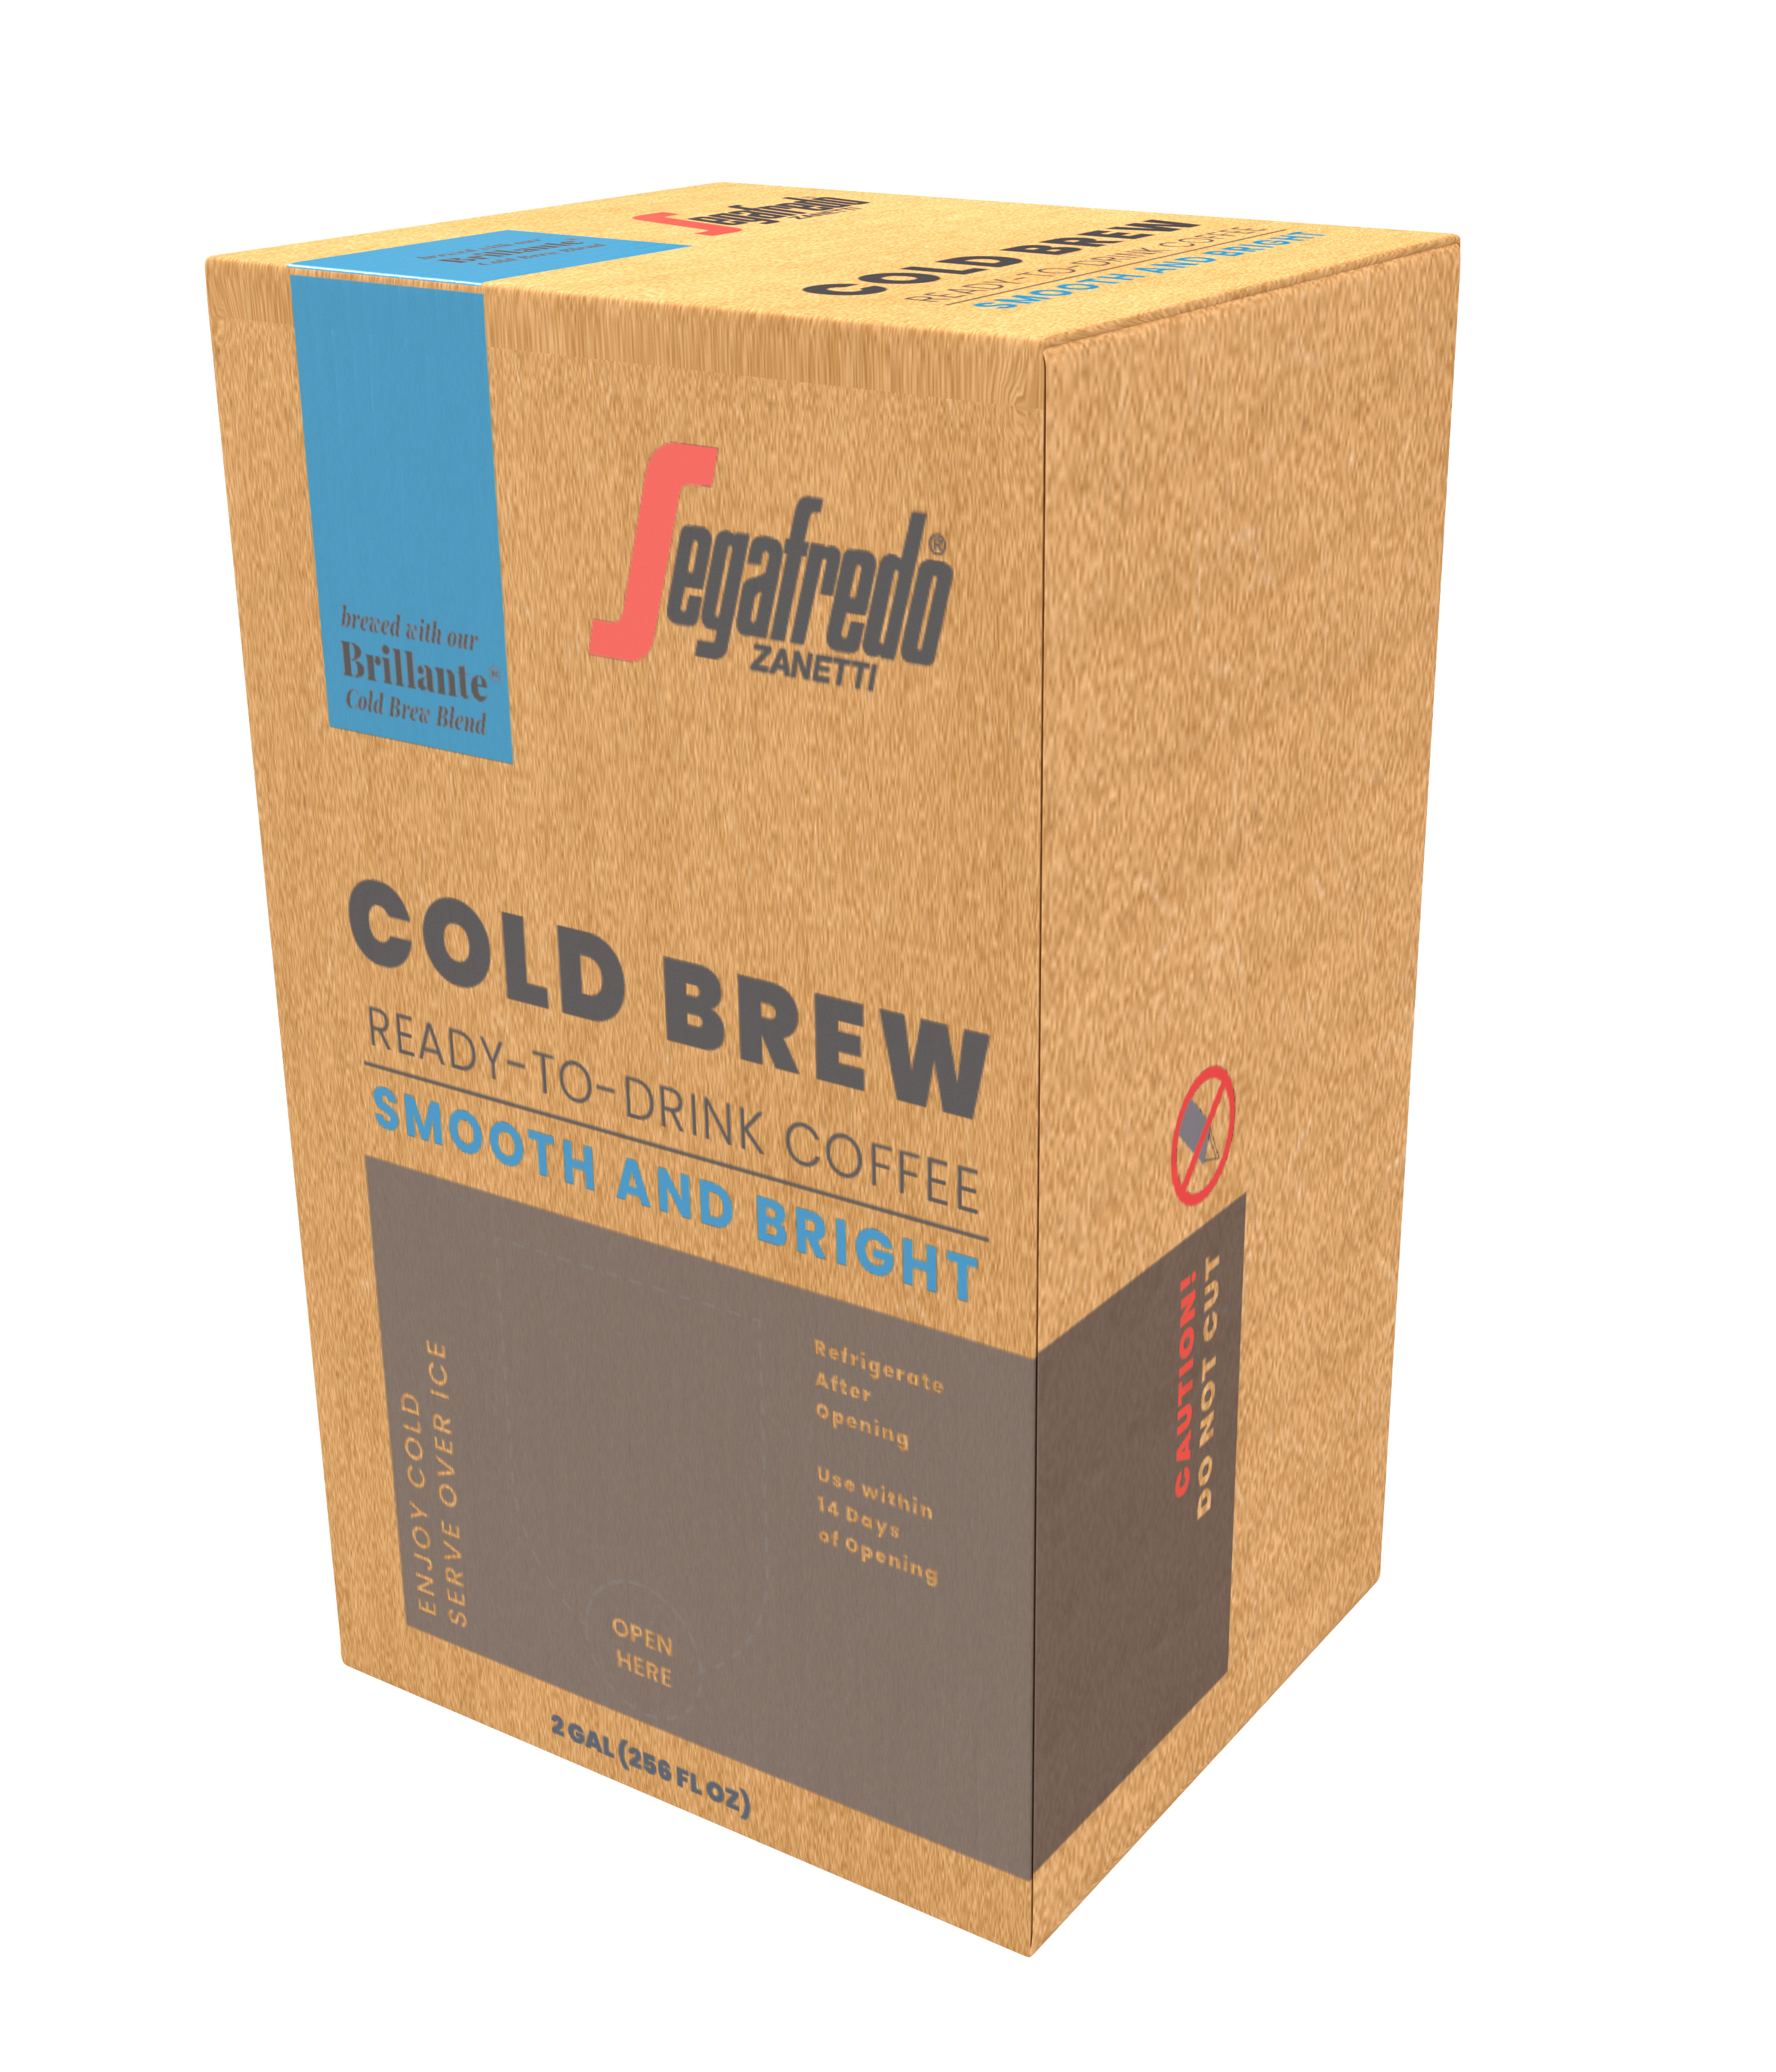 Segafredo Ready-To-Drink Cold Brew Coffee